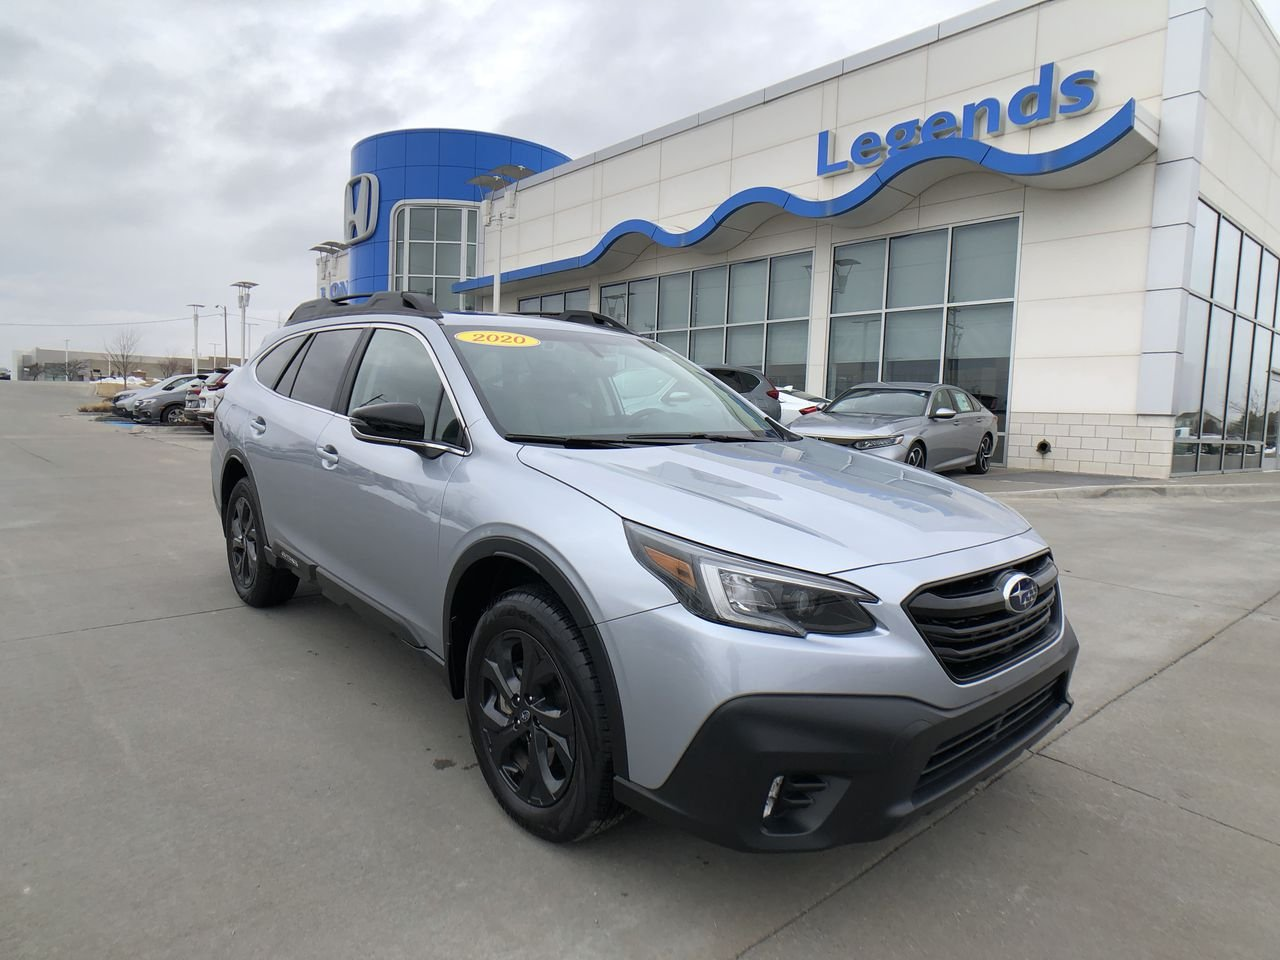 Pre-Owned 2020 Subaru Outback Onyx Edition XT